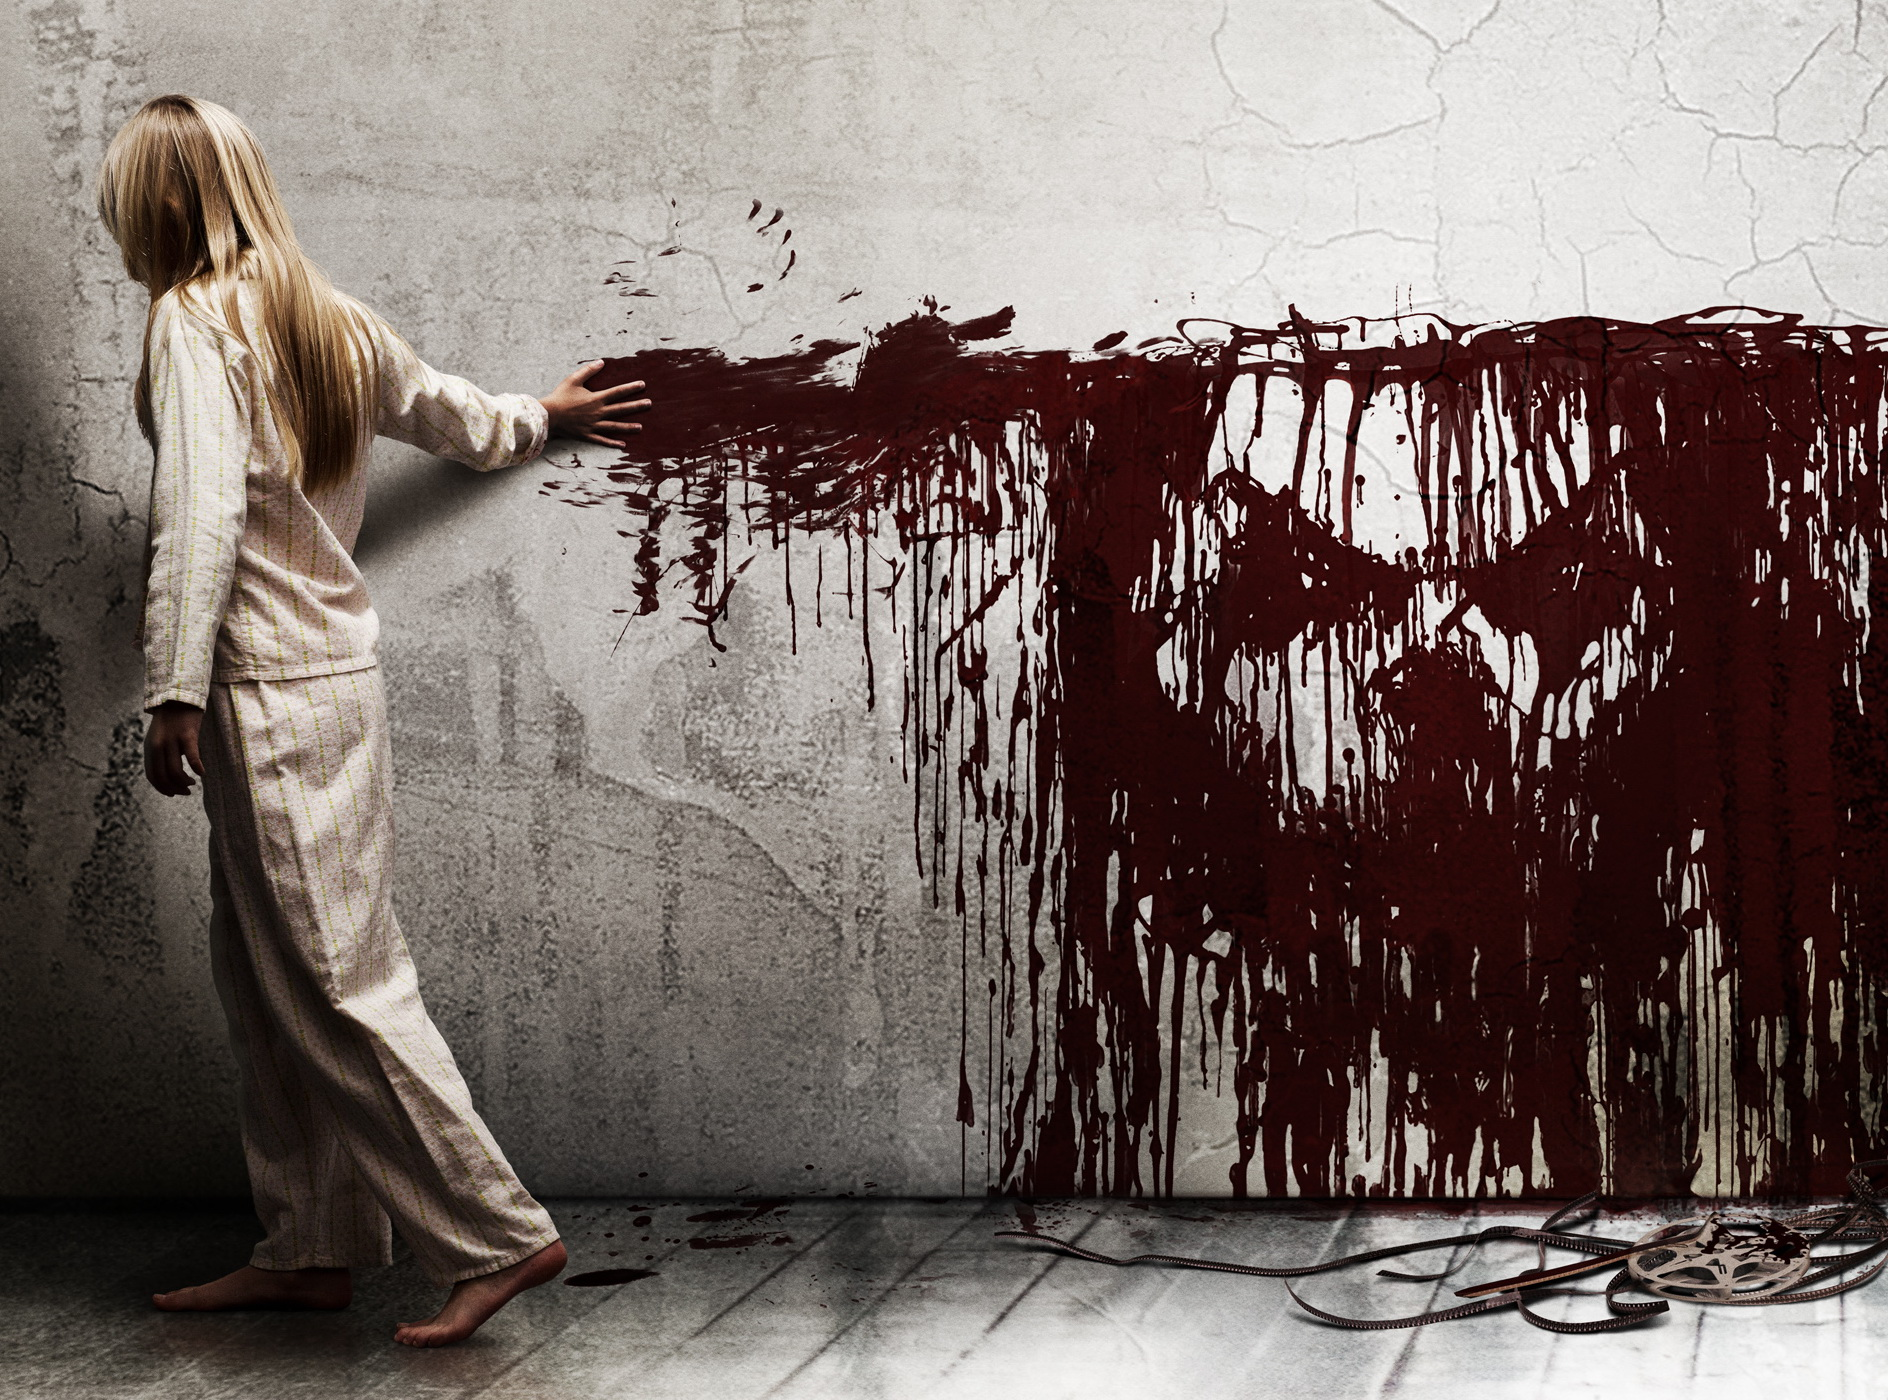 Sinister Movie Awesome Wallpapers(High Resolution) - All HD Wallpapers